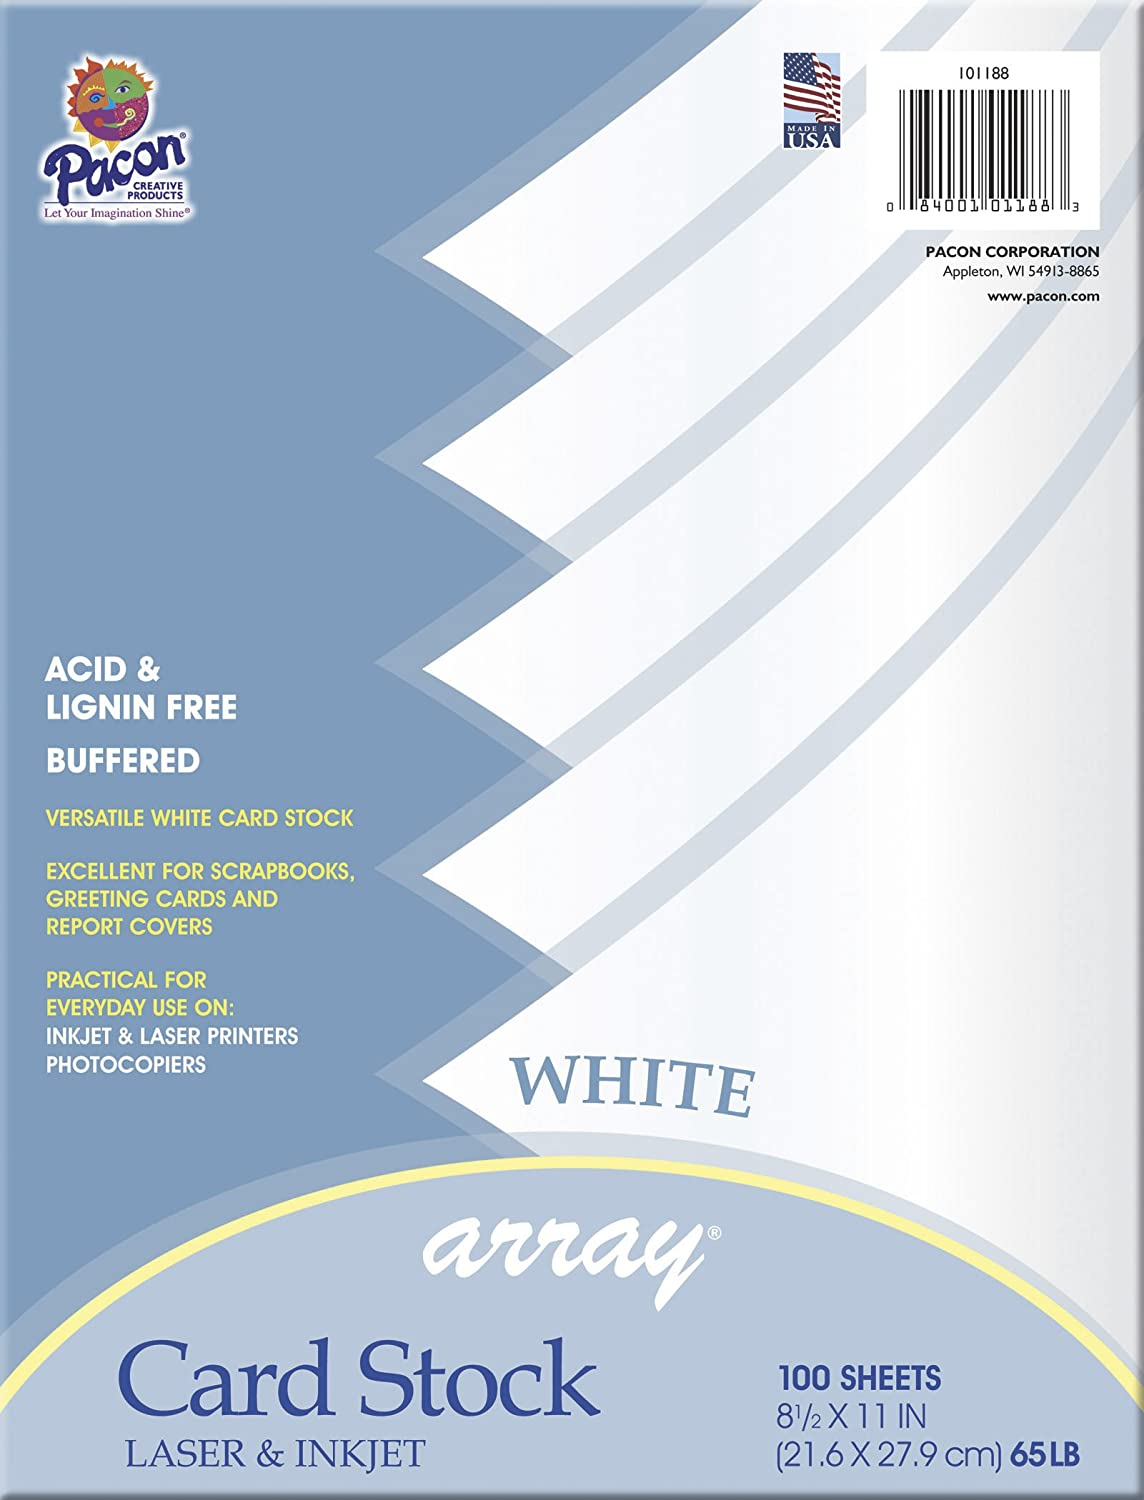 Flesh colored cardstock - Amazon Com Pacon Card Stock 8 1 2 Inches By 11 Inches White 100 Sheets 101188 Cardstock Papers Office Products